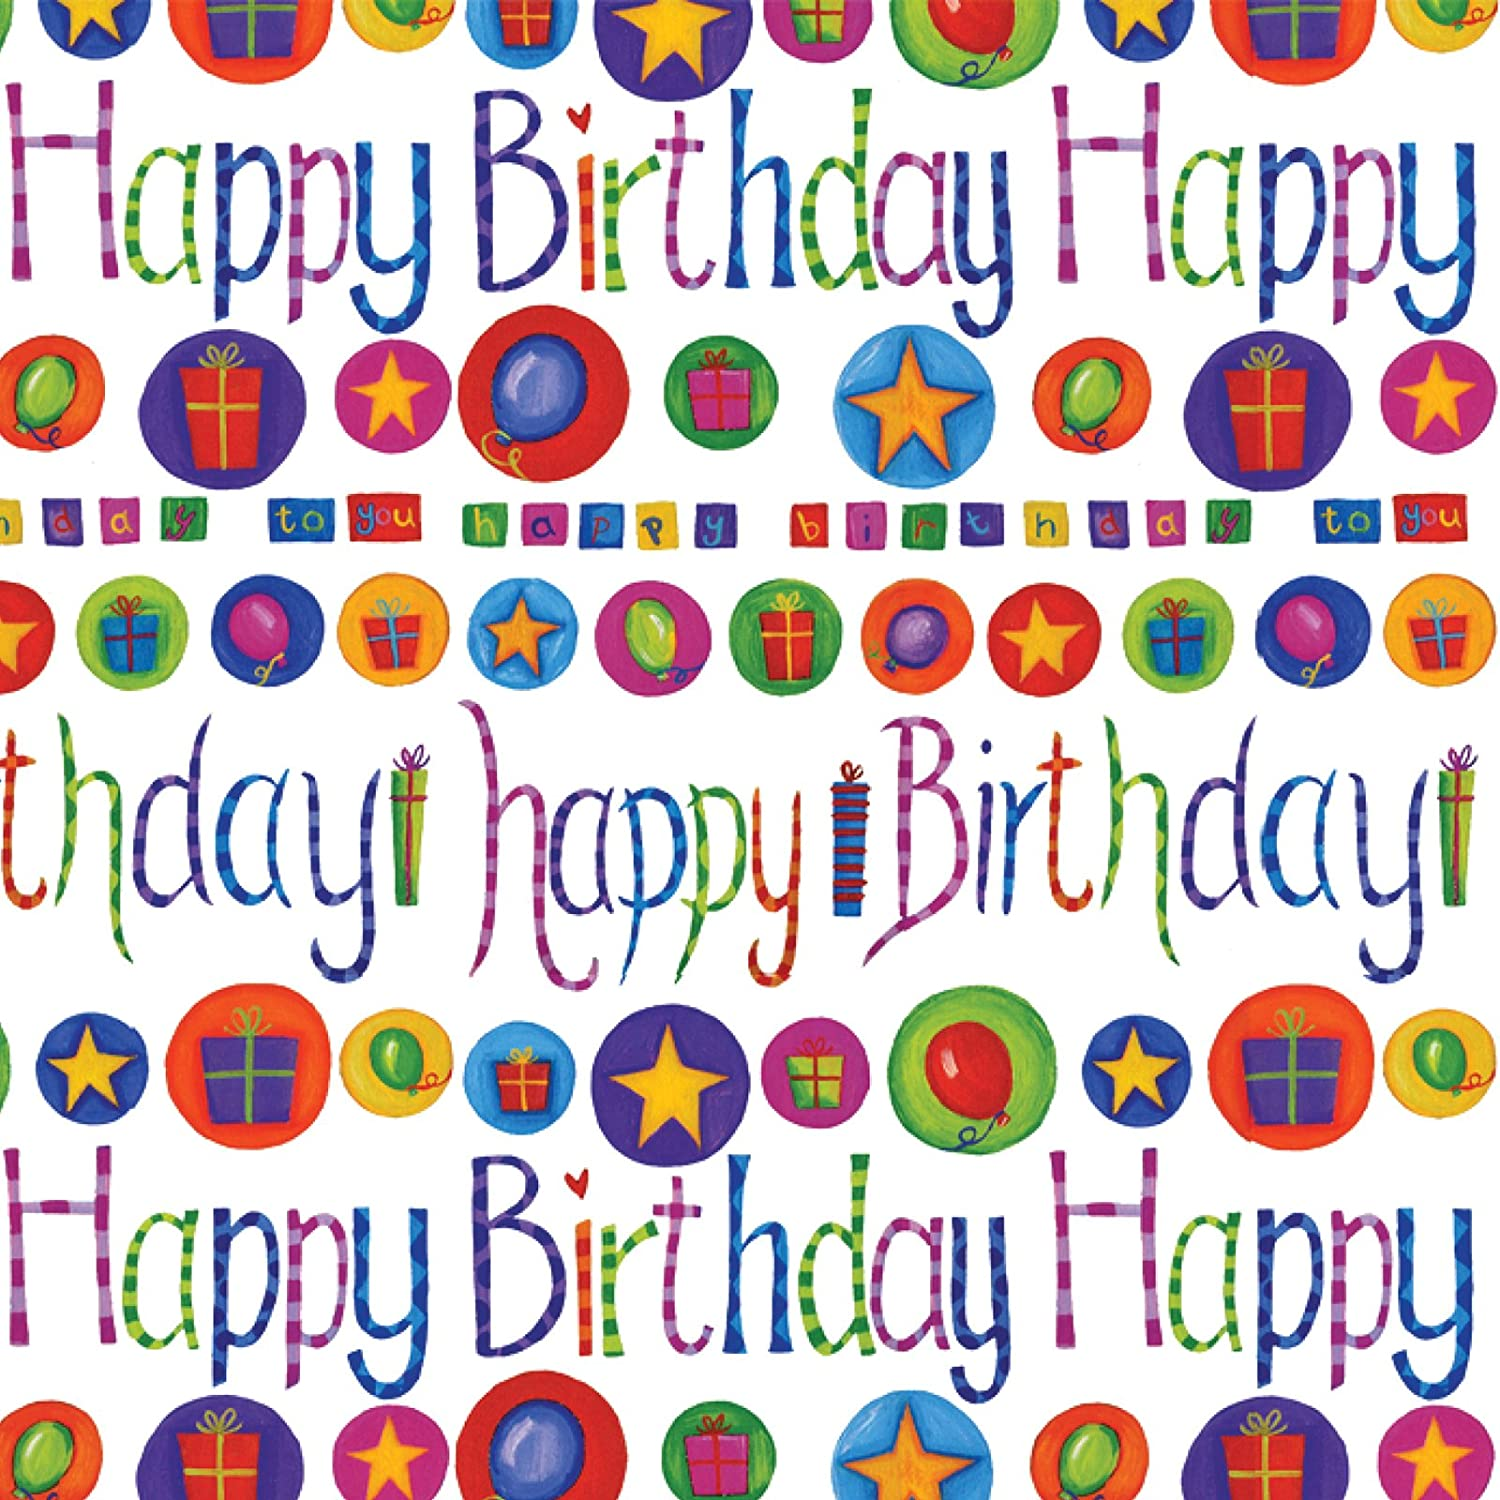 Printable Birthday Wrapping Paper Free ~ Birthday gift wrapping paper printable images